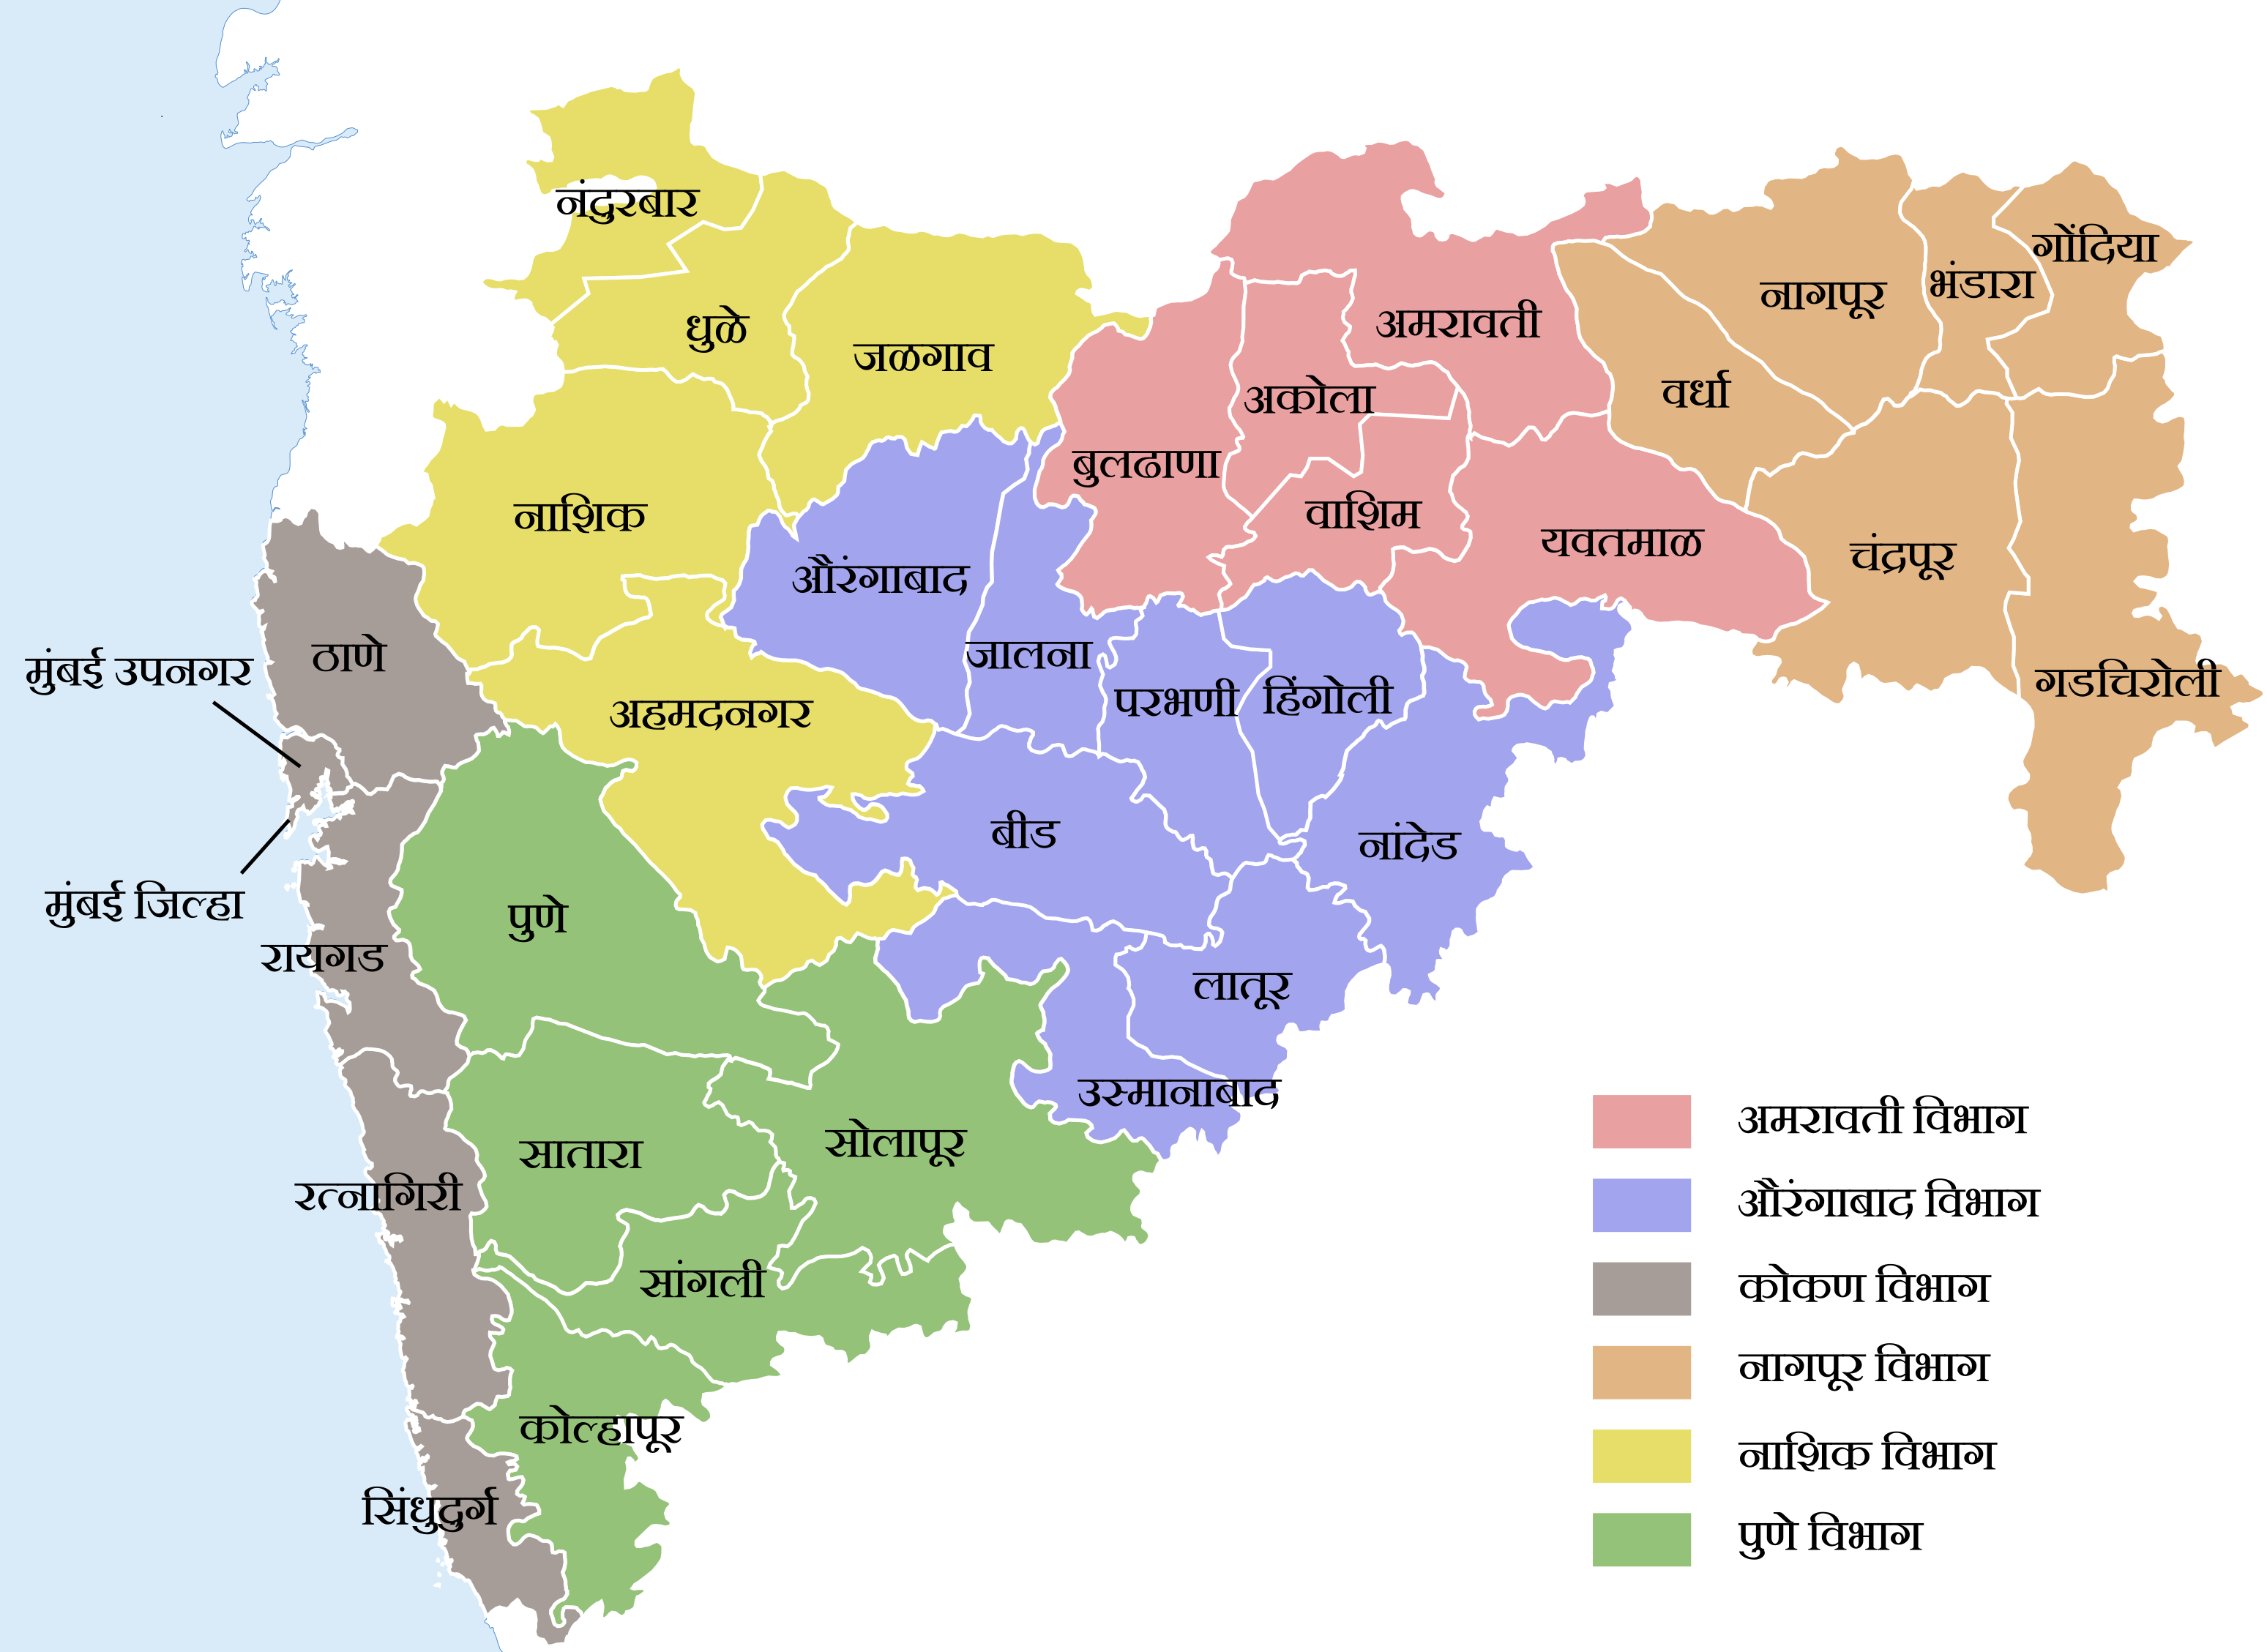 pune map with File Maharashtra Locator Map on Watch furthermore 3 Absorbing Days In Enchanting Goa in addition Rajasthan Village Tour besides Wah Haleem Festival E 346777 further File Delhi airport departure terminal 1A  1.